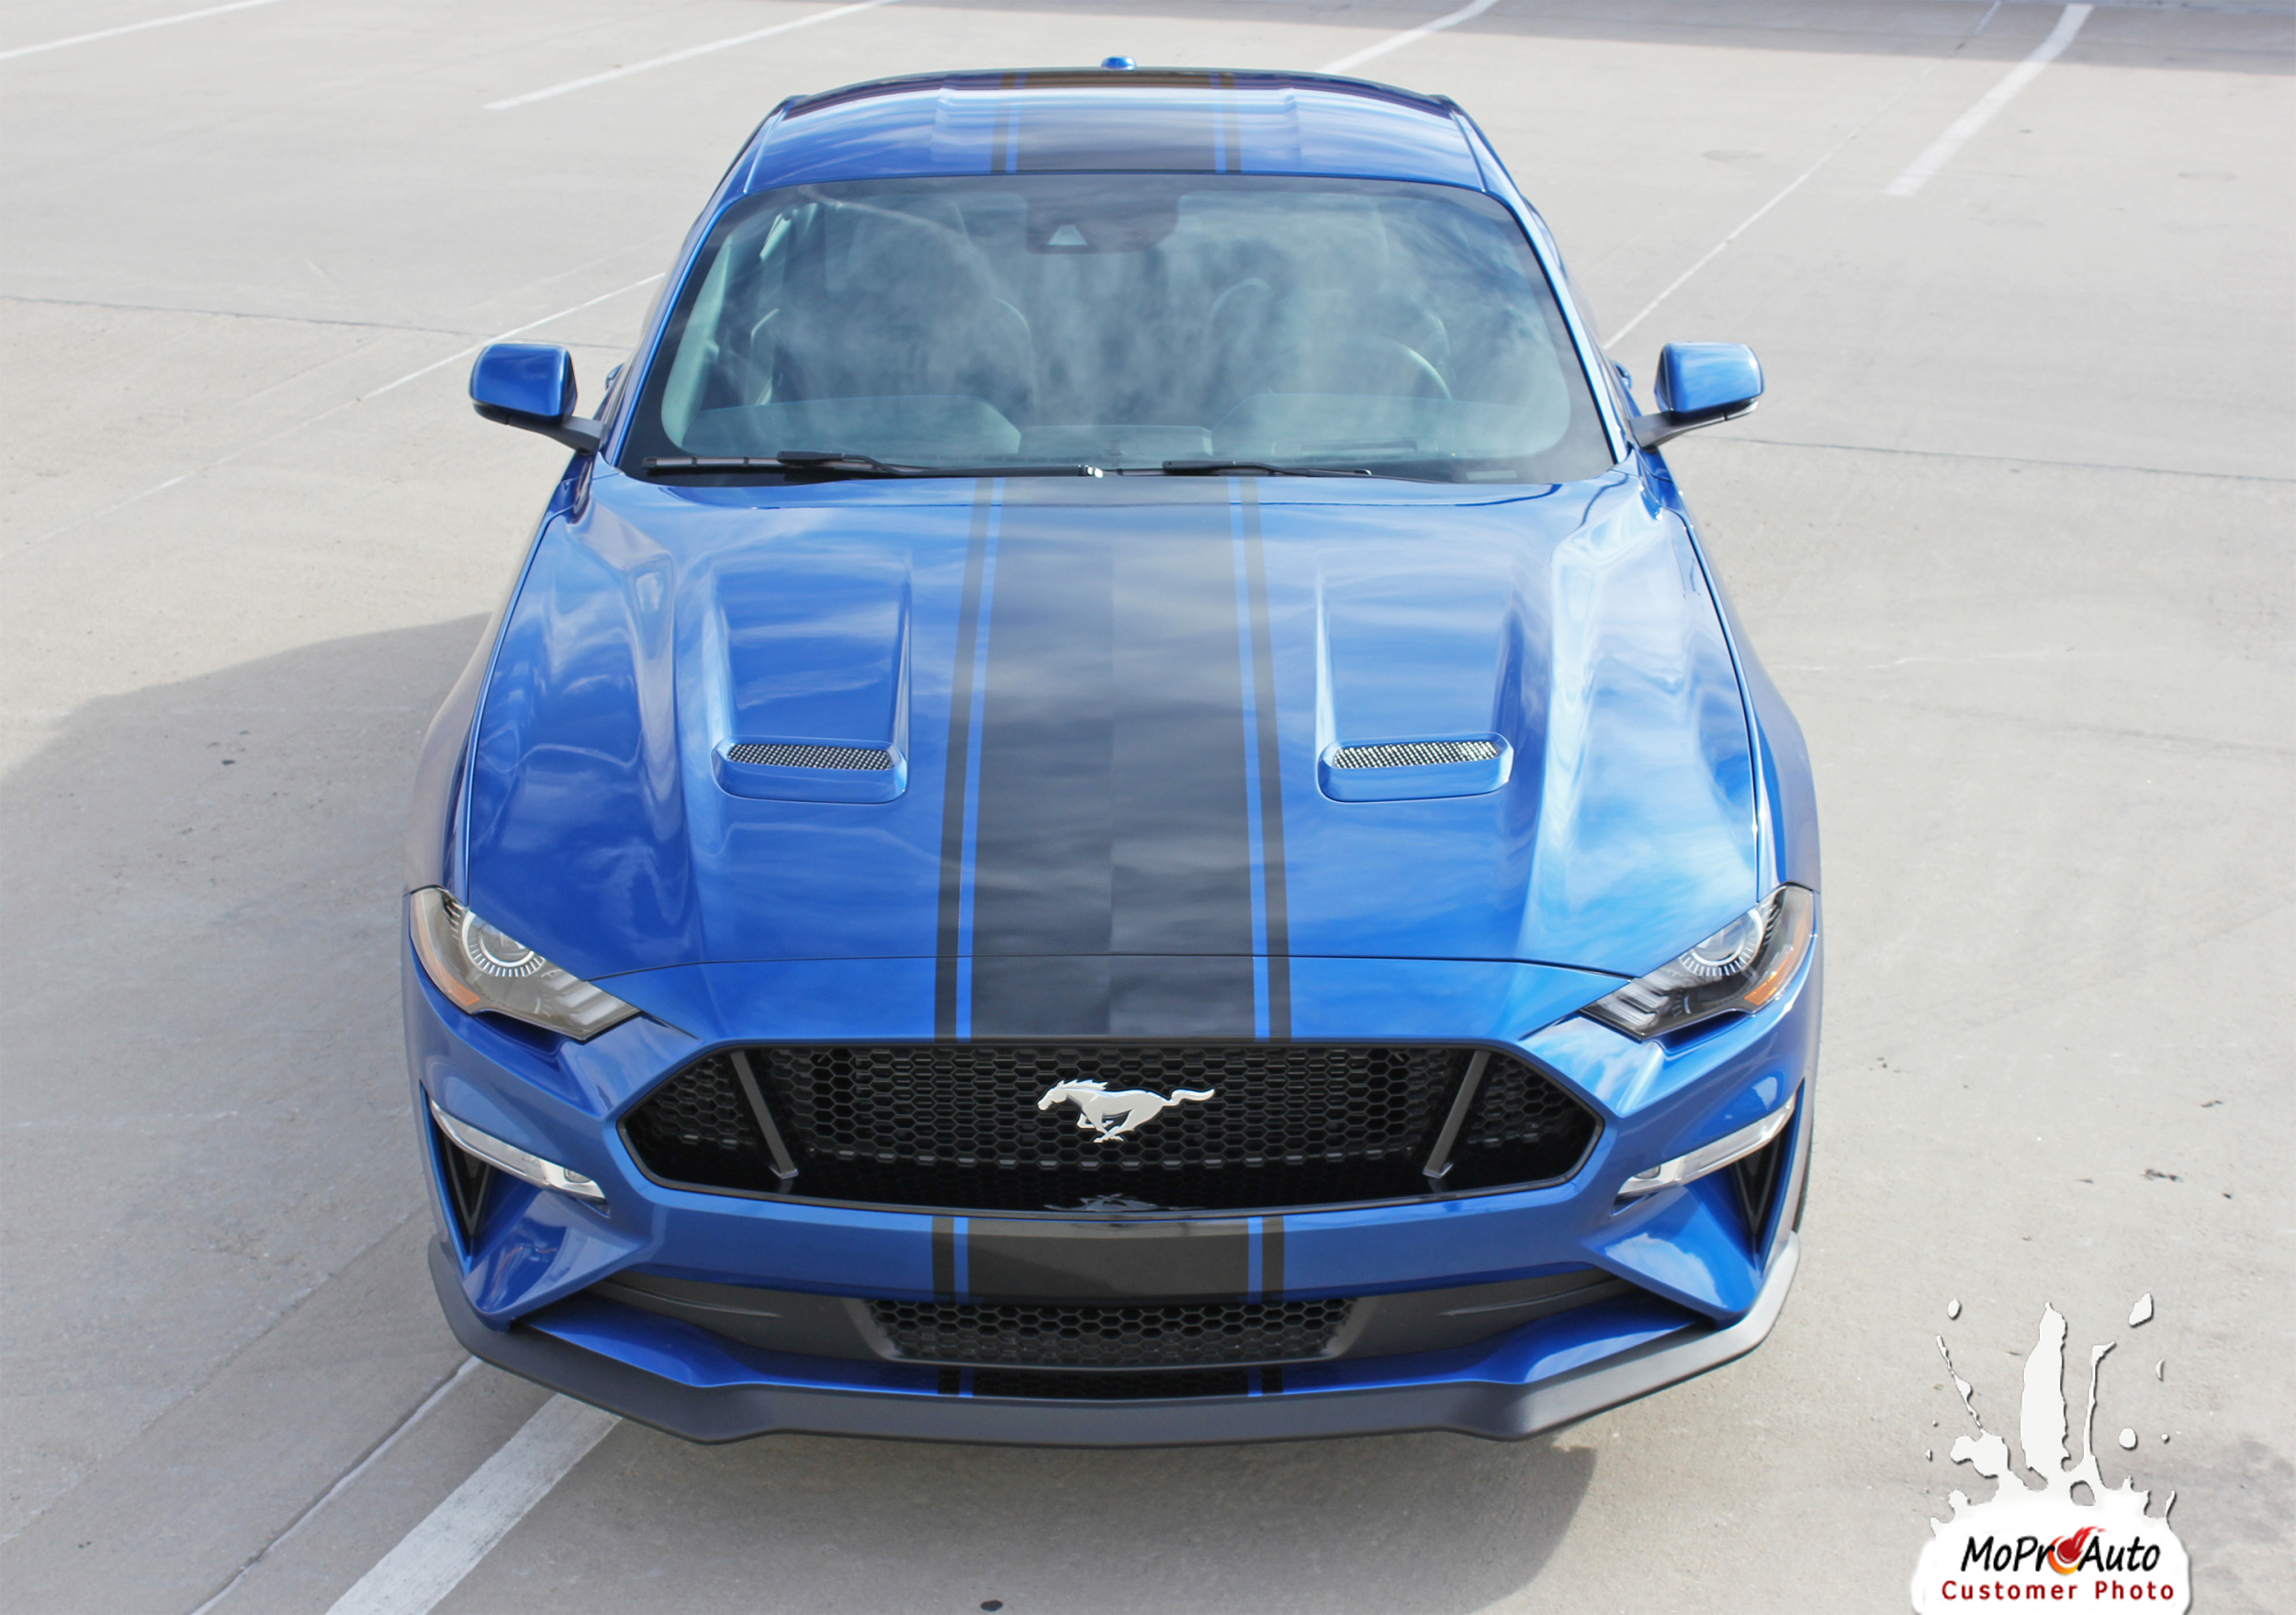 2018 HYPER RALLY OEM Style Racing Stripes for Ford Mustang - MoProAuto Pro Design Series Vinyl Graphics, Stripes and Decals Kit